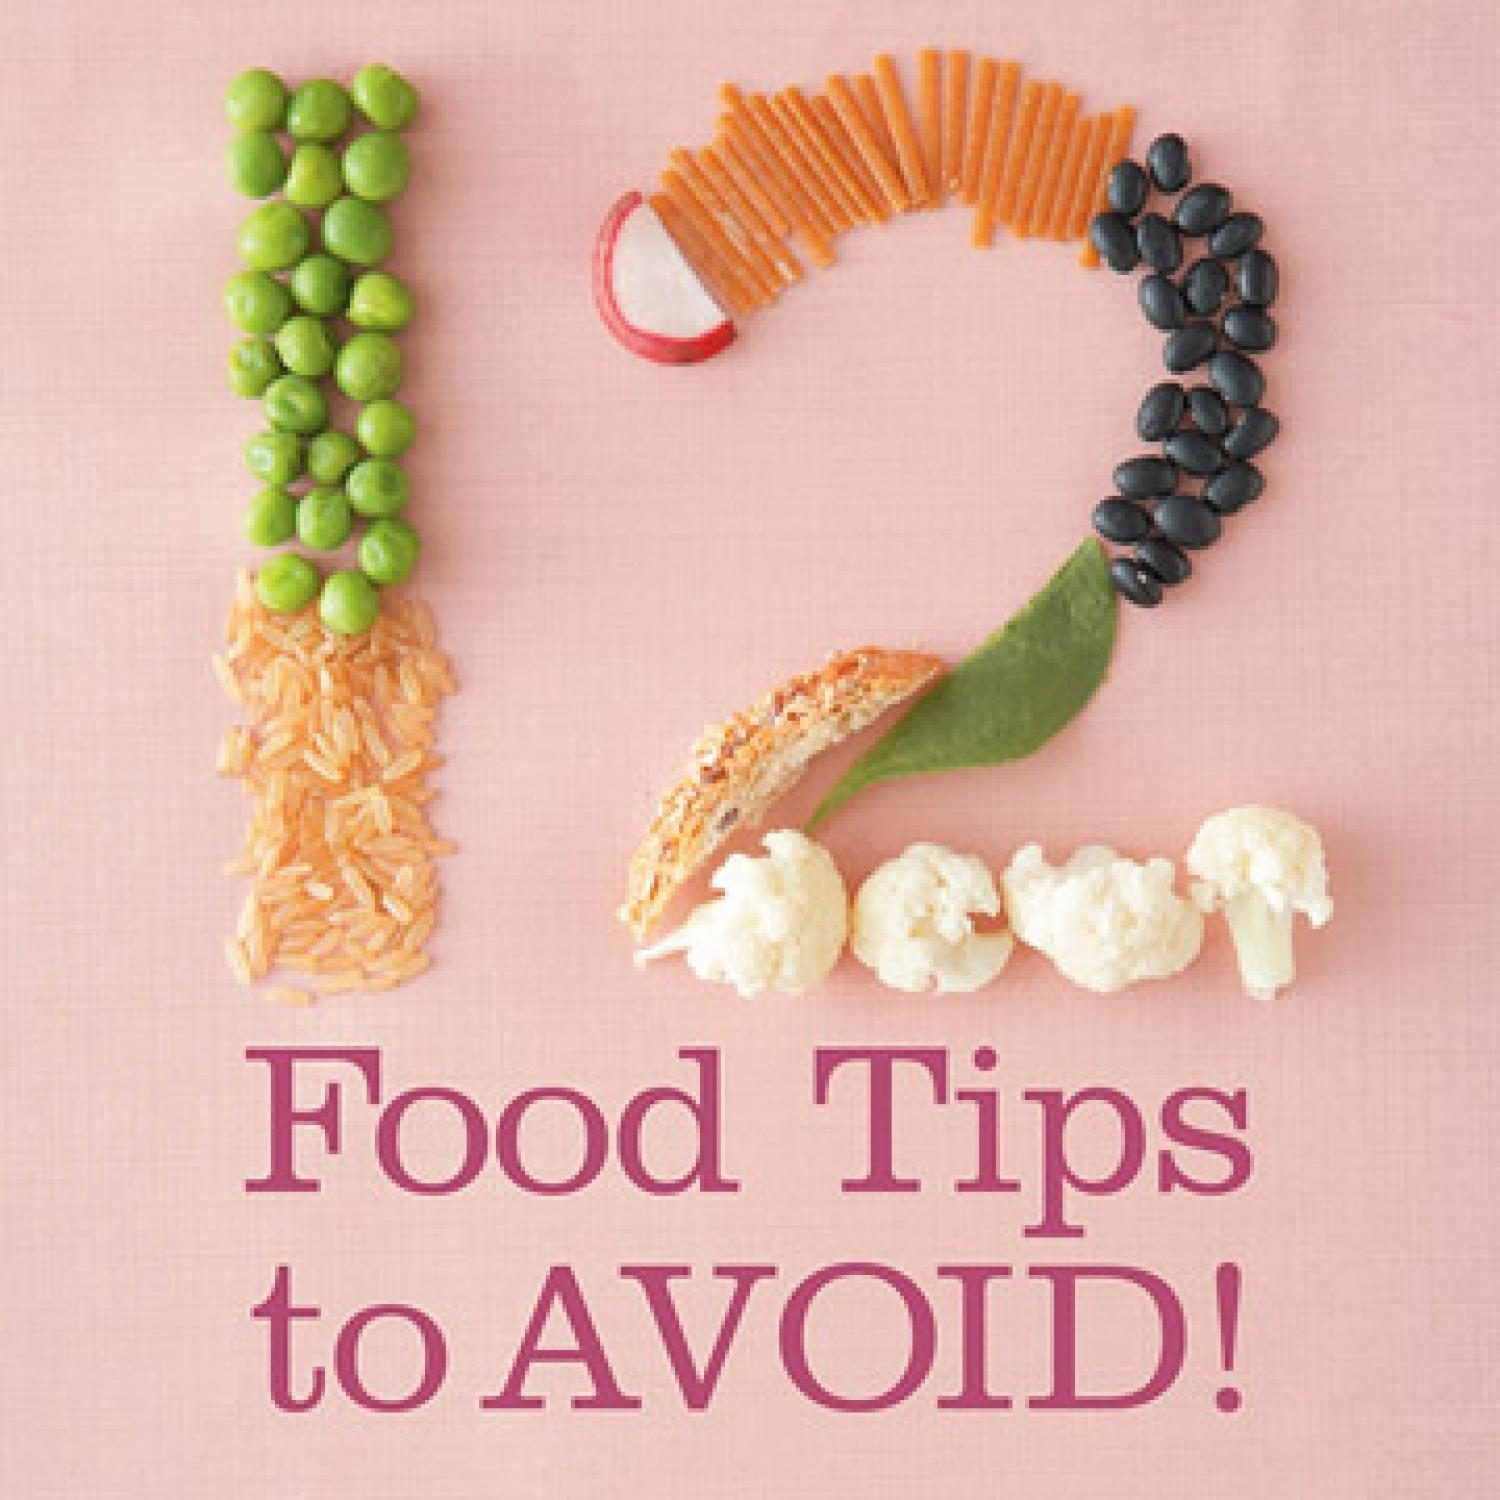 12 Diabetes Food Tips to Avoid